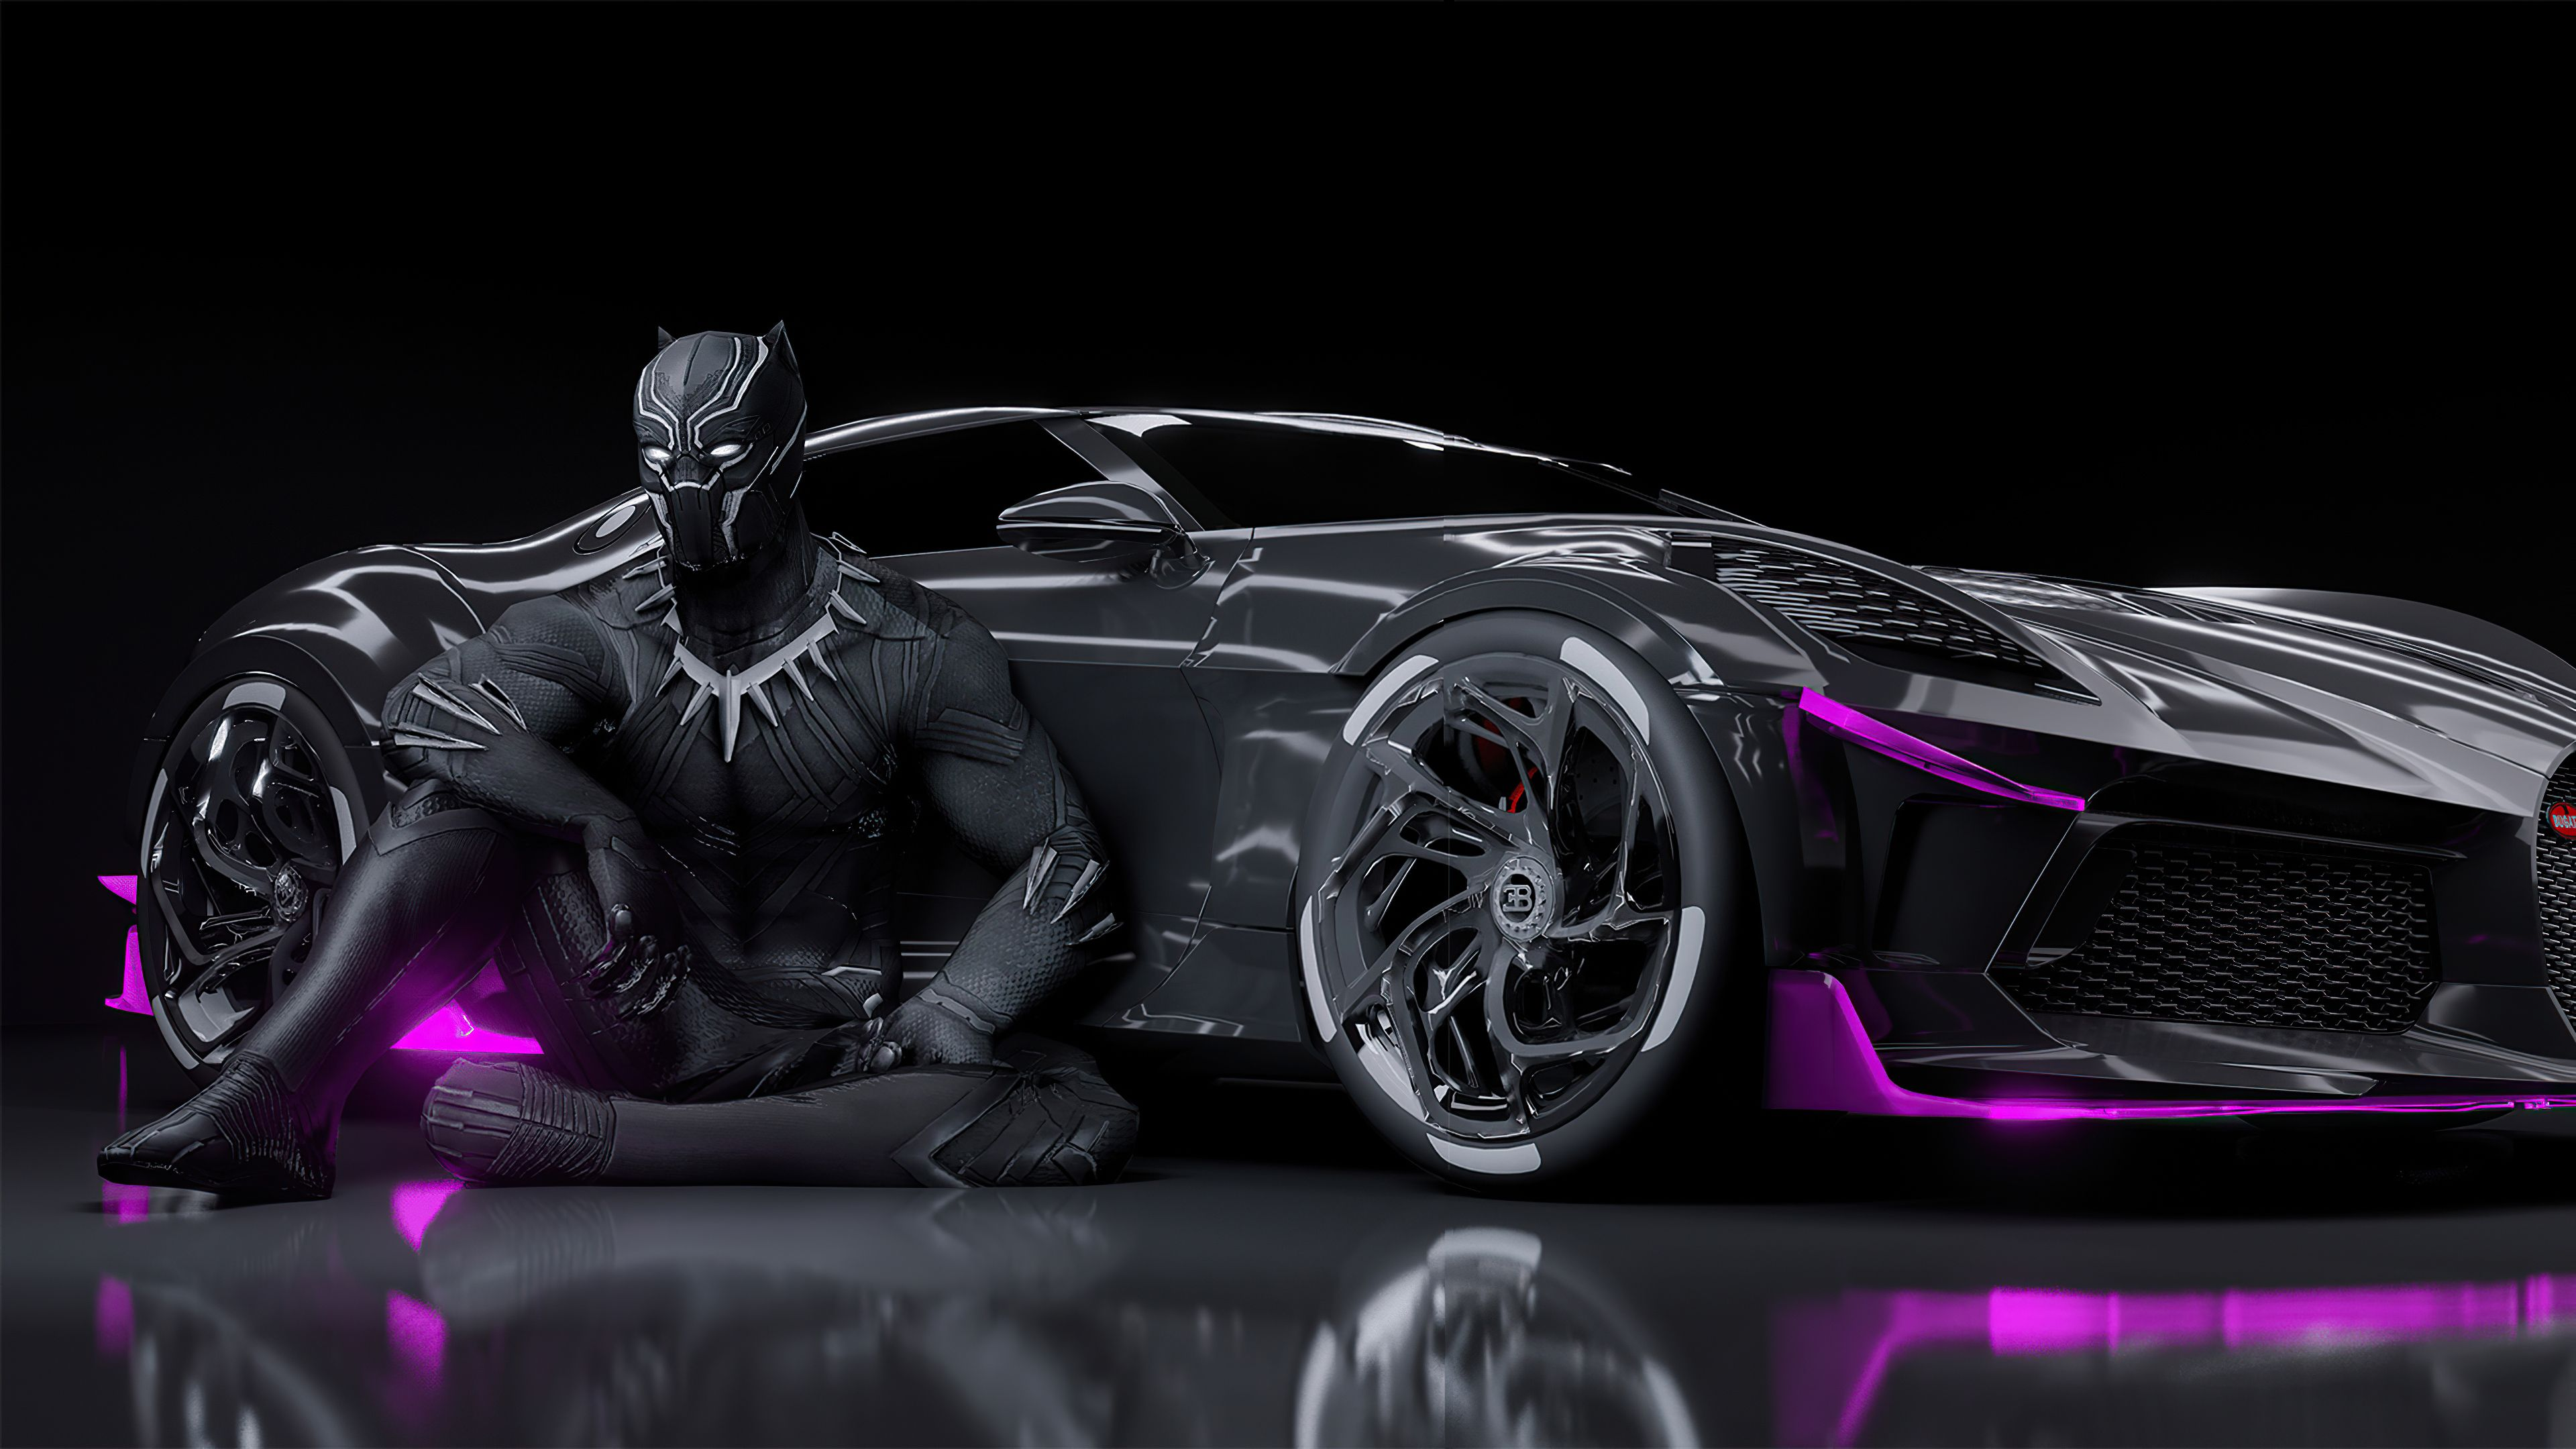 Black Panther Bugatti Chiron La Voiture Noire 4k Black Panther Bugatti Chiron La Voiture Noire 4k Wallpapers In 2021 Bugatti Chiron Gym Music Hd Widescreen Wallpapers